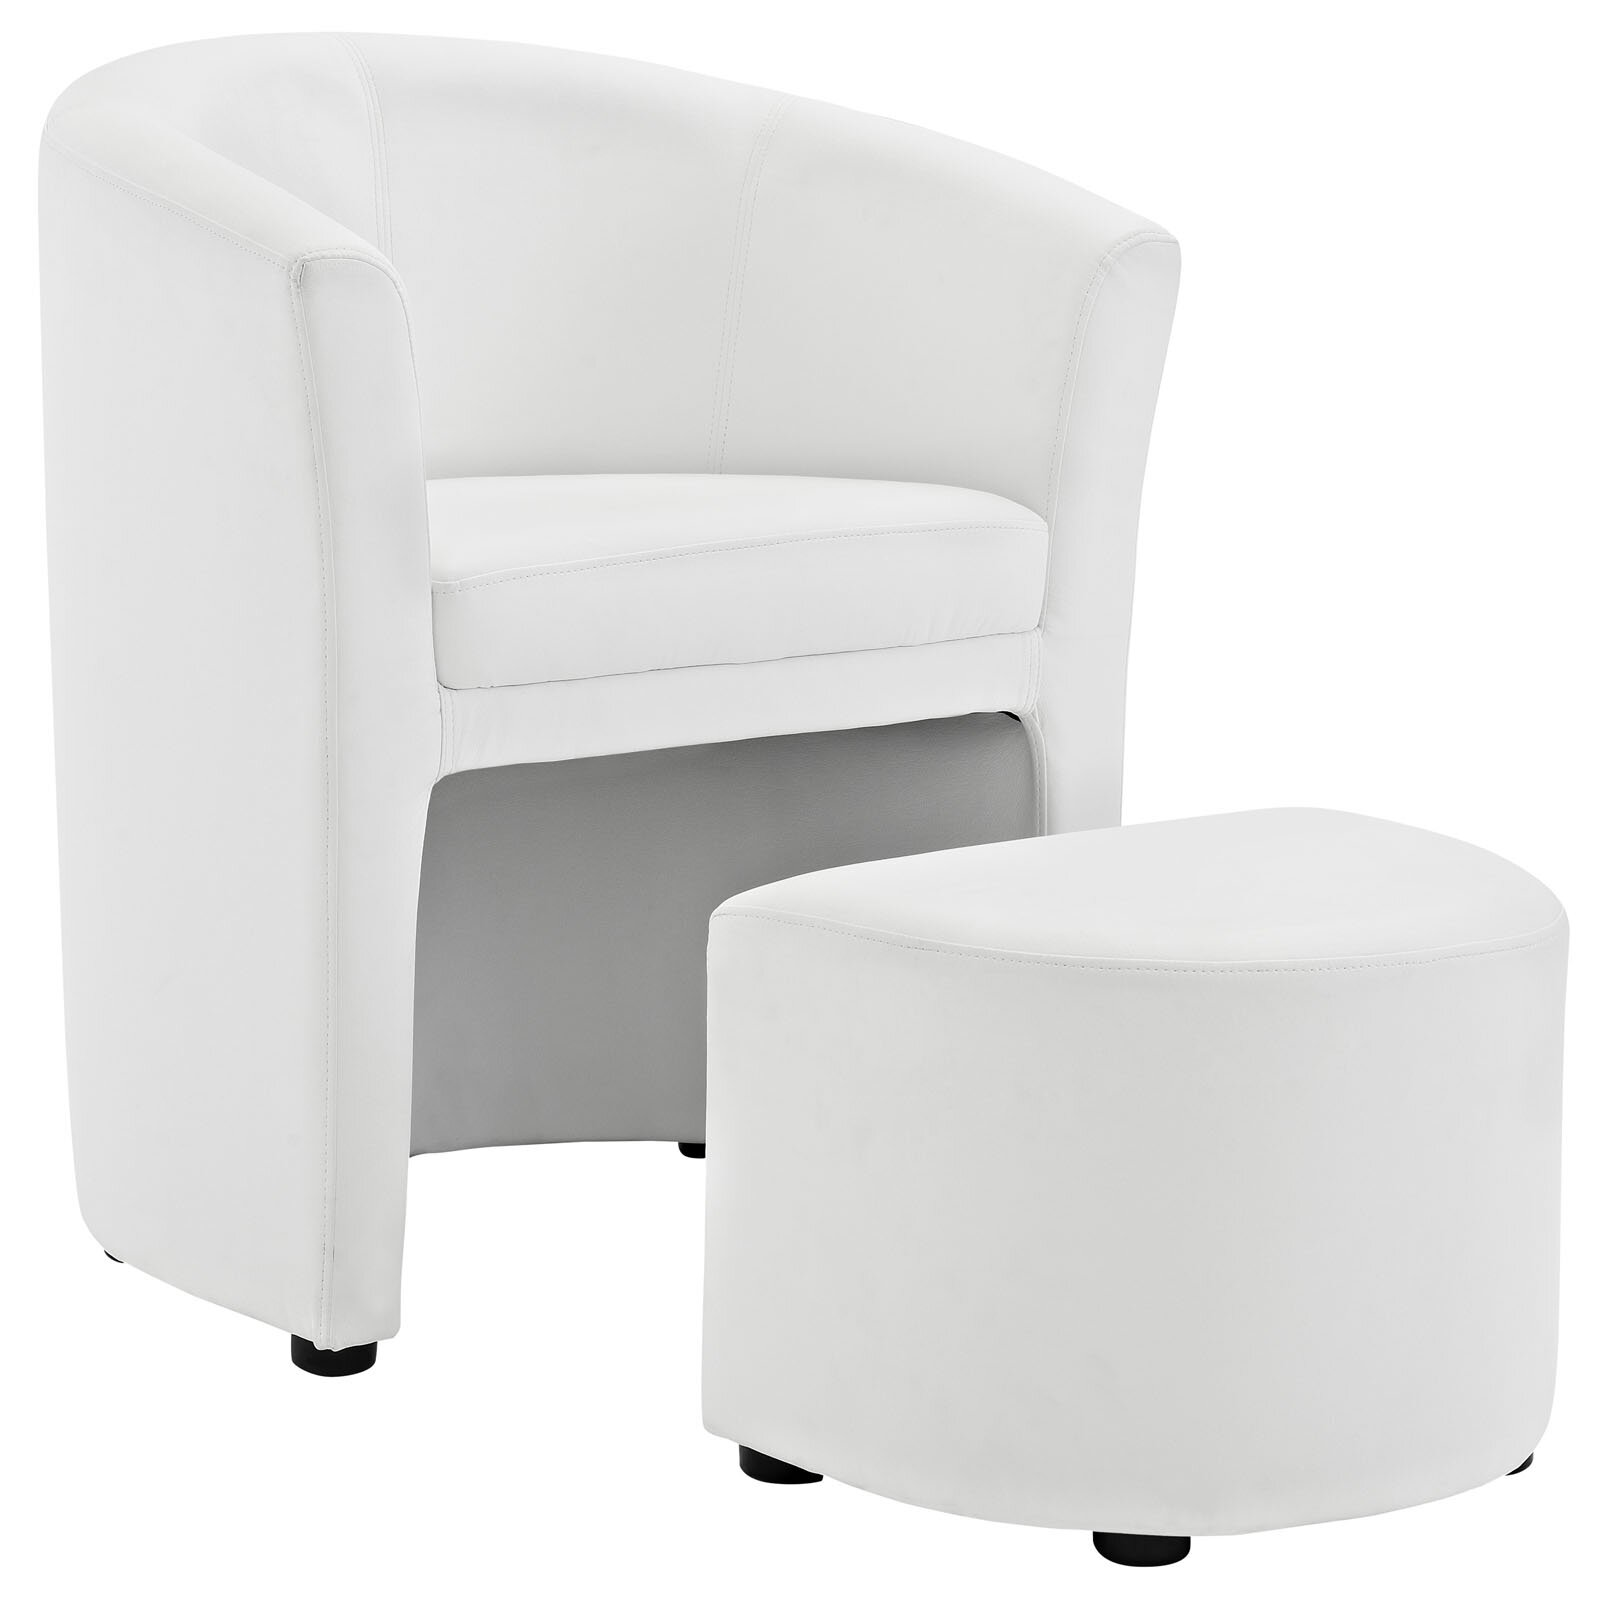 Modway Divulge Arm Chair and Ottoman Set & Reviews | Wayfair